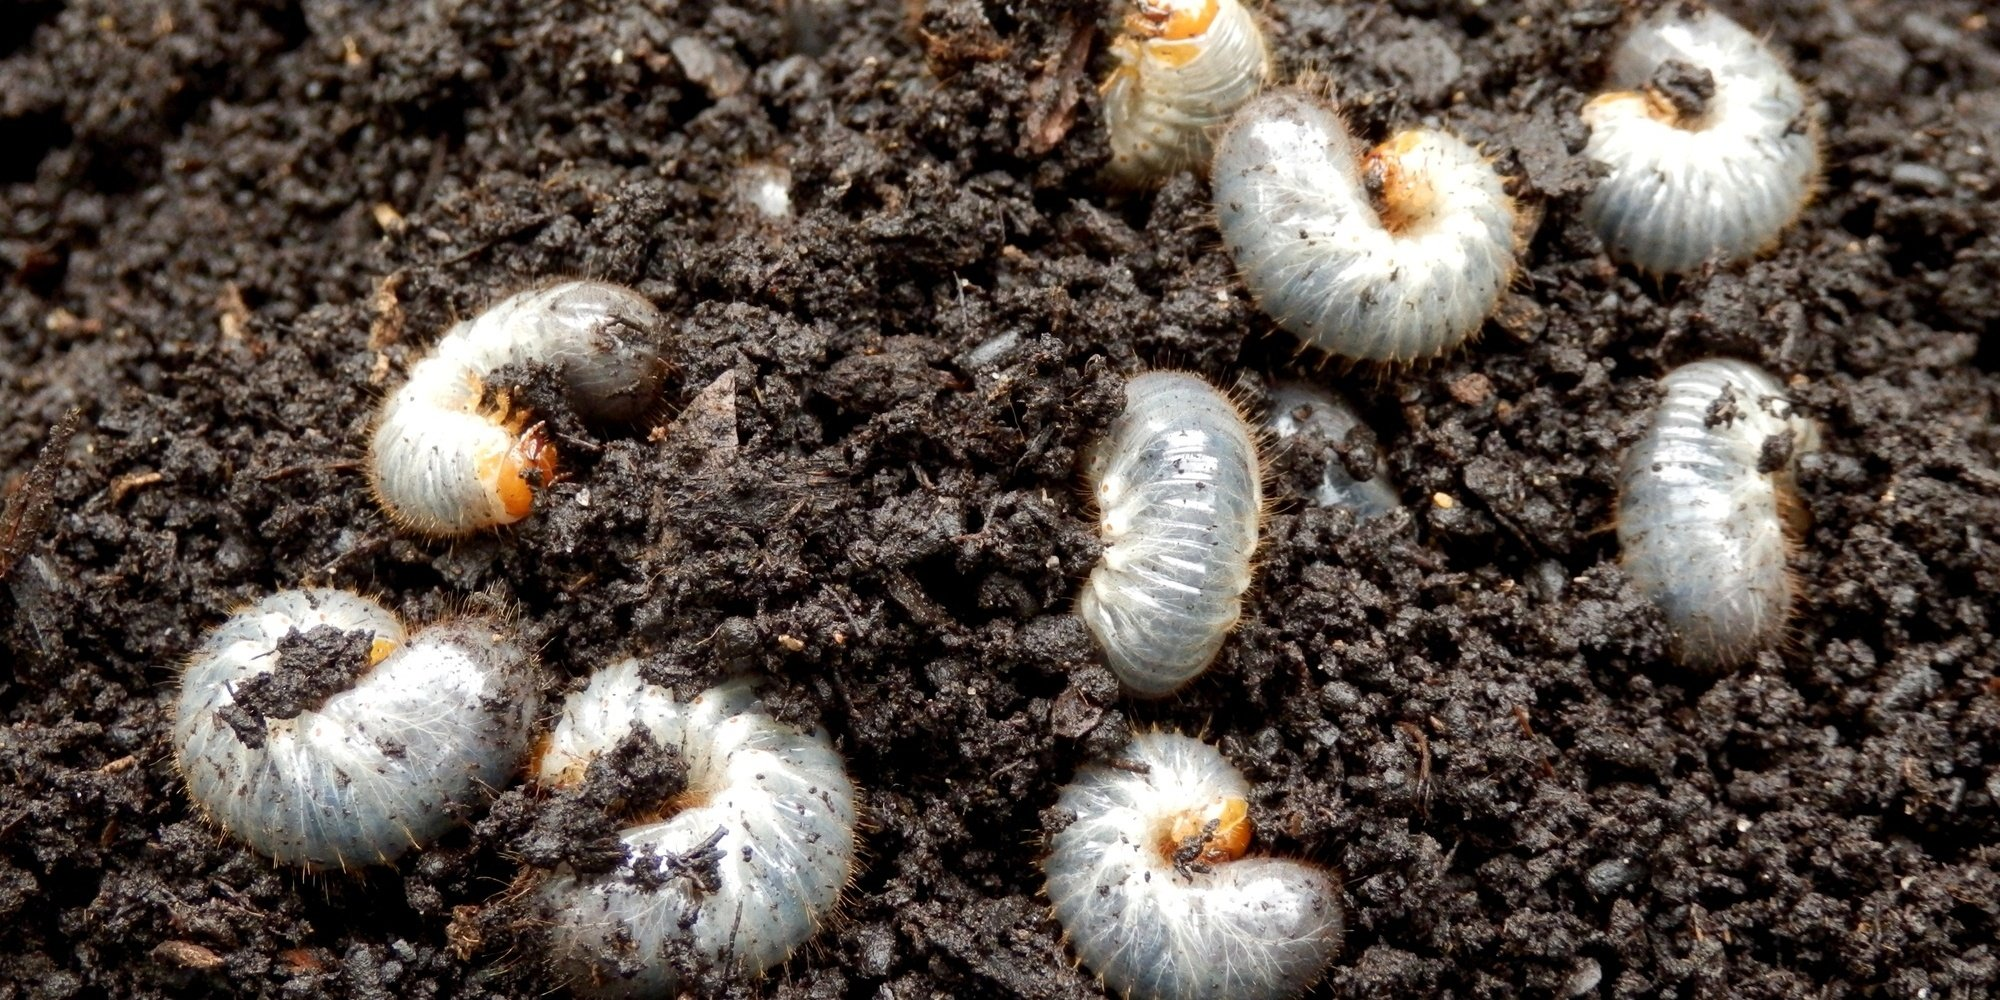 Damage from the beetle starts in the fall and continues through spring, until the beetle matures and escapes from the lawn.